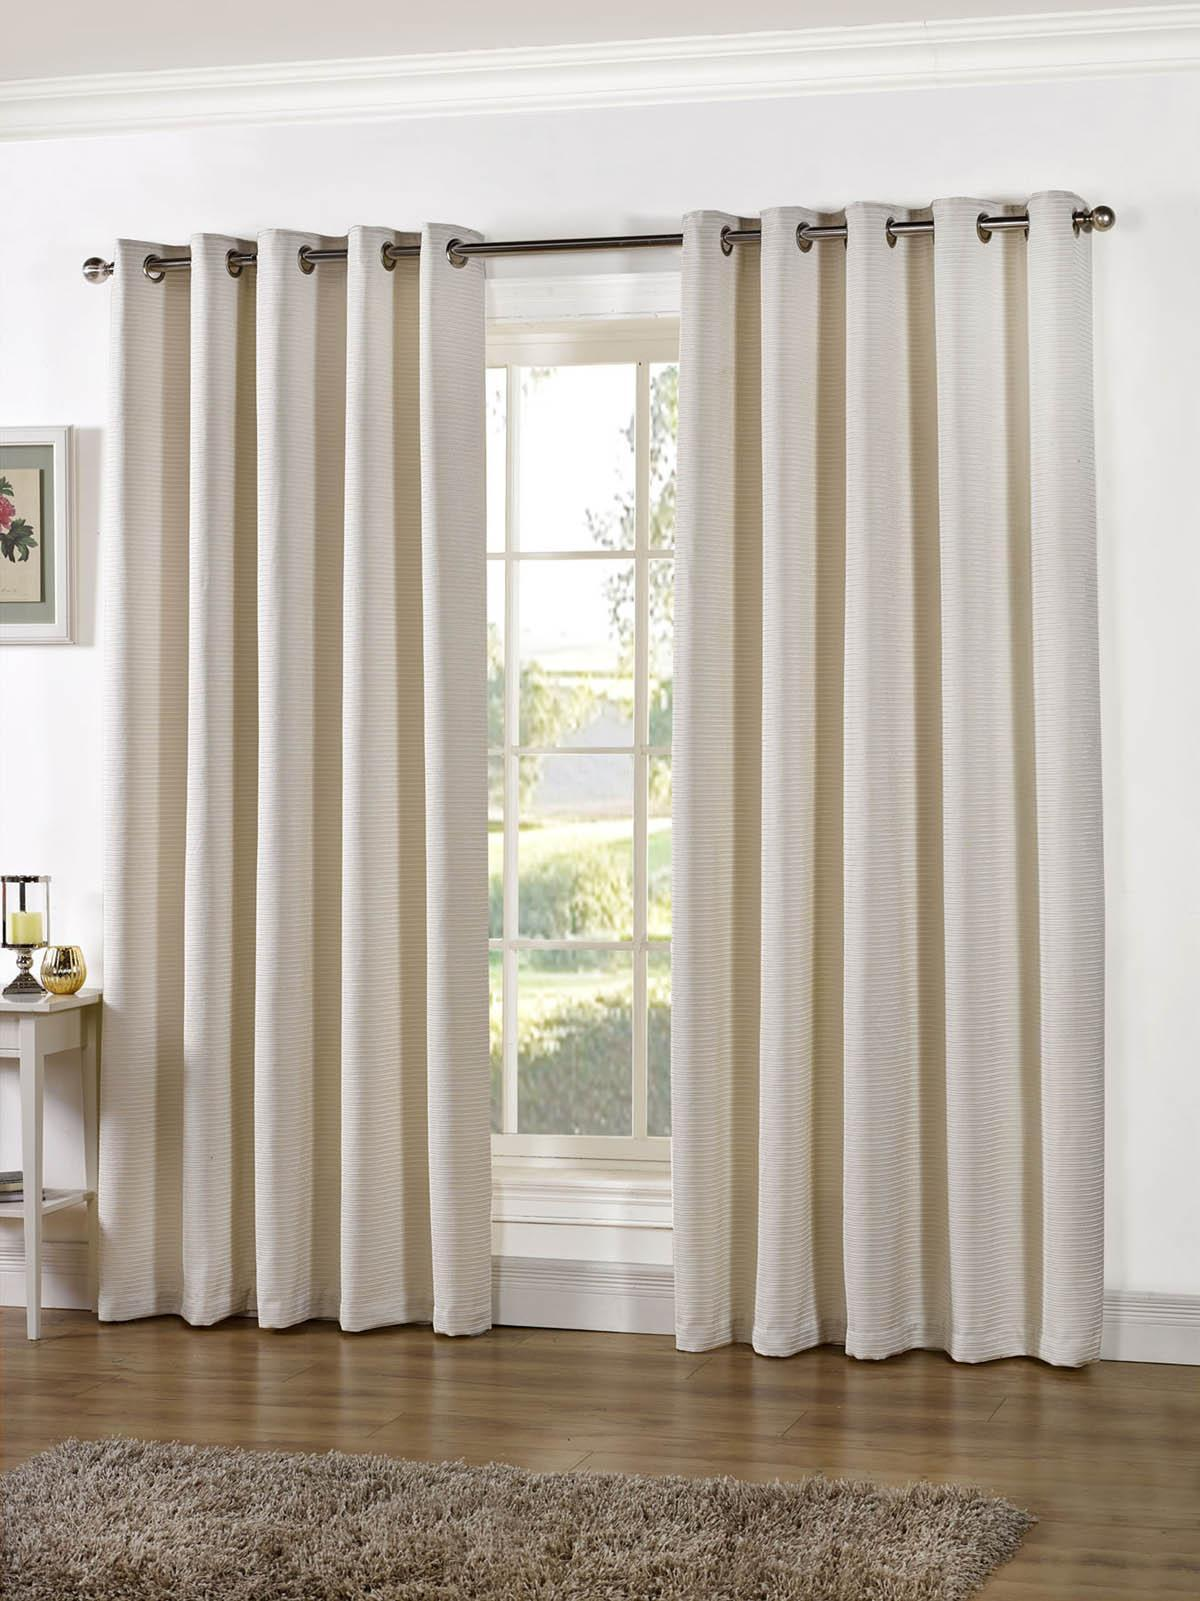 creamy beige curtain itm lace sheer door design eyelets with drapes bedroom curtains fabric ivory